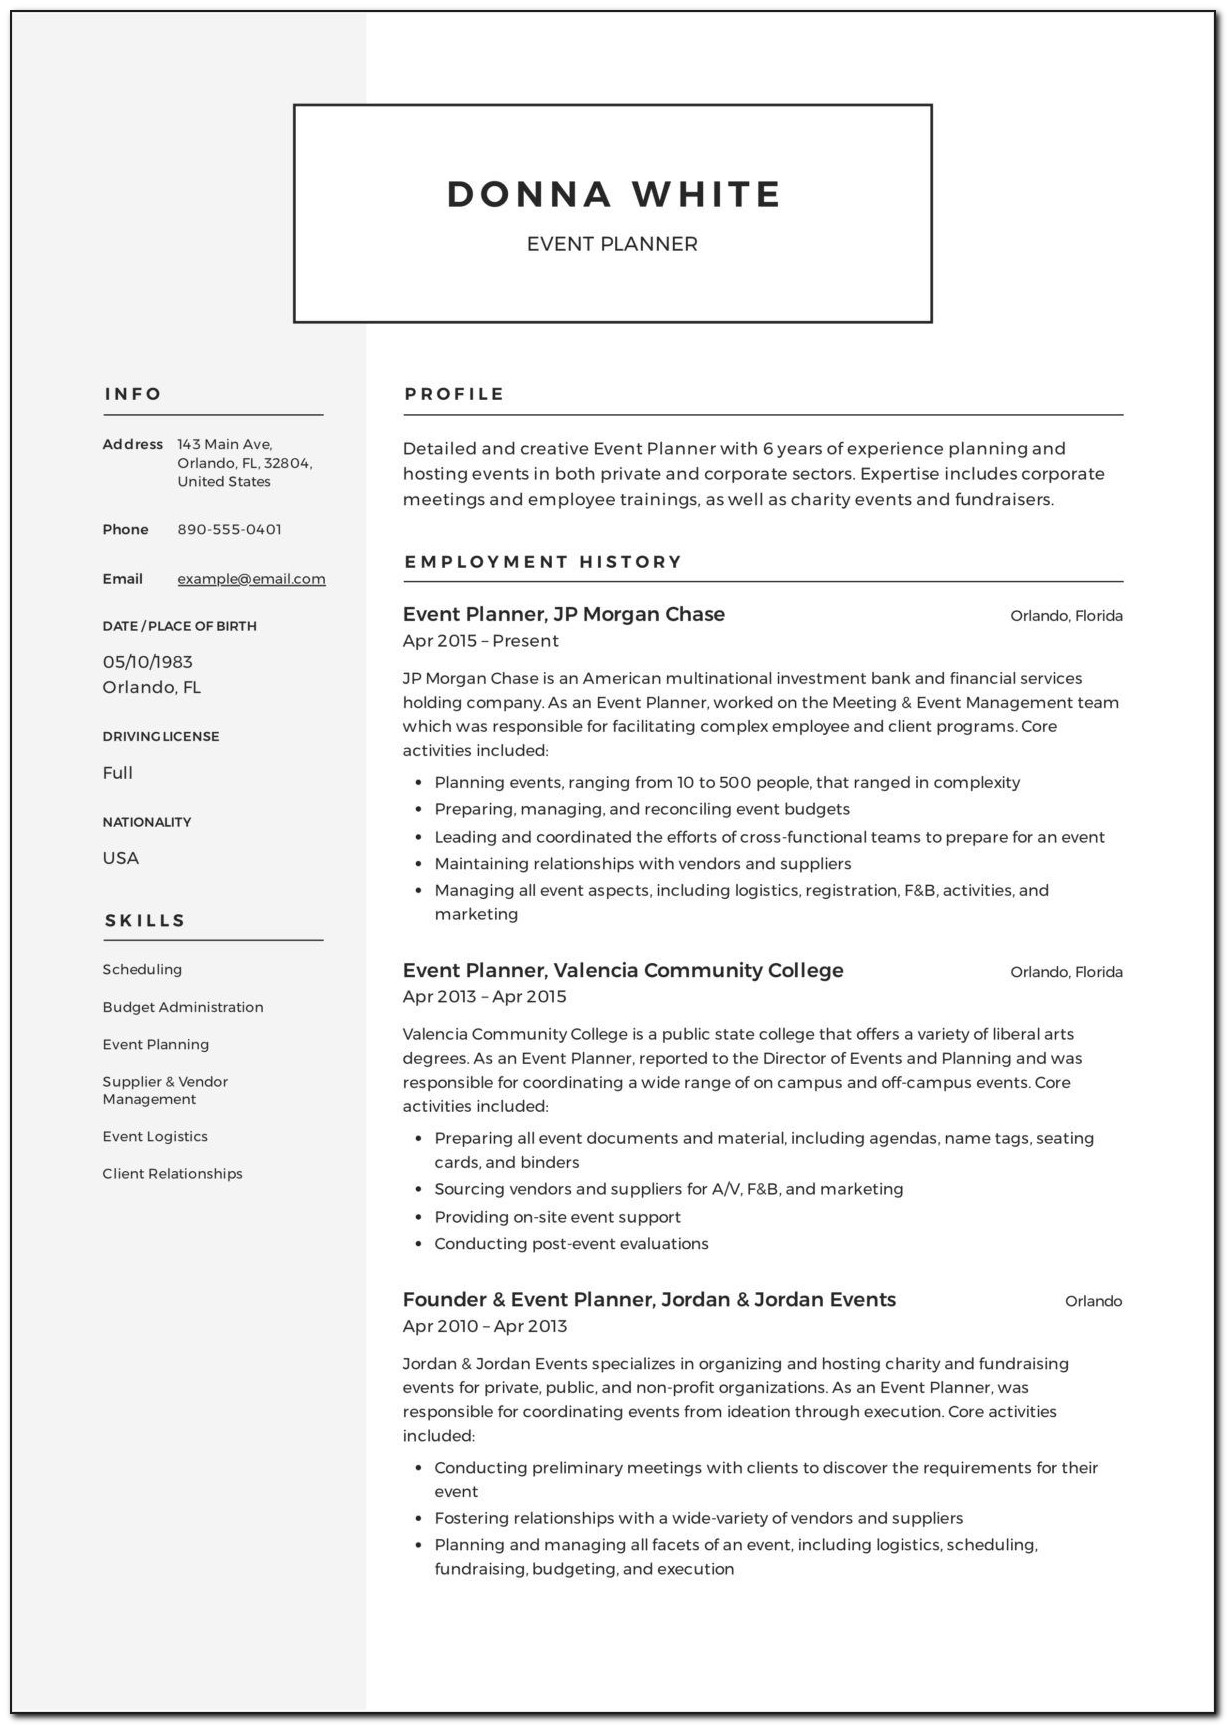 Event Planner Contract Sample Free